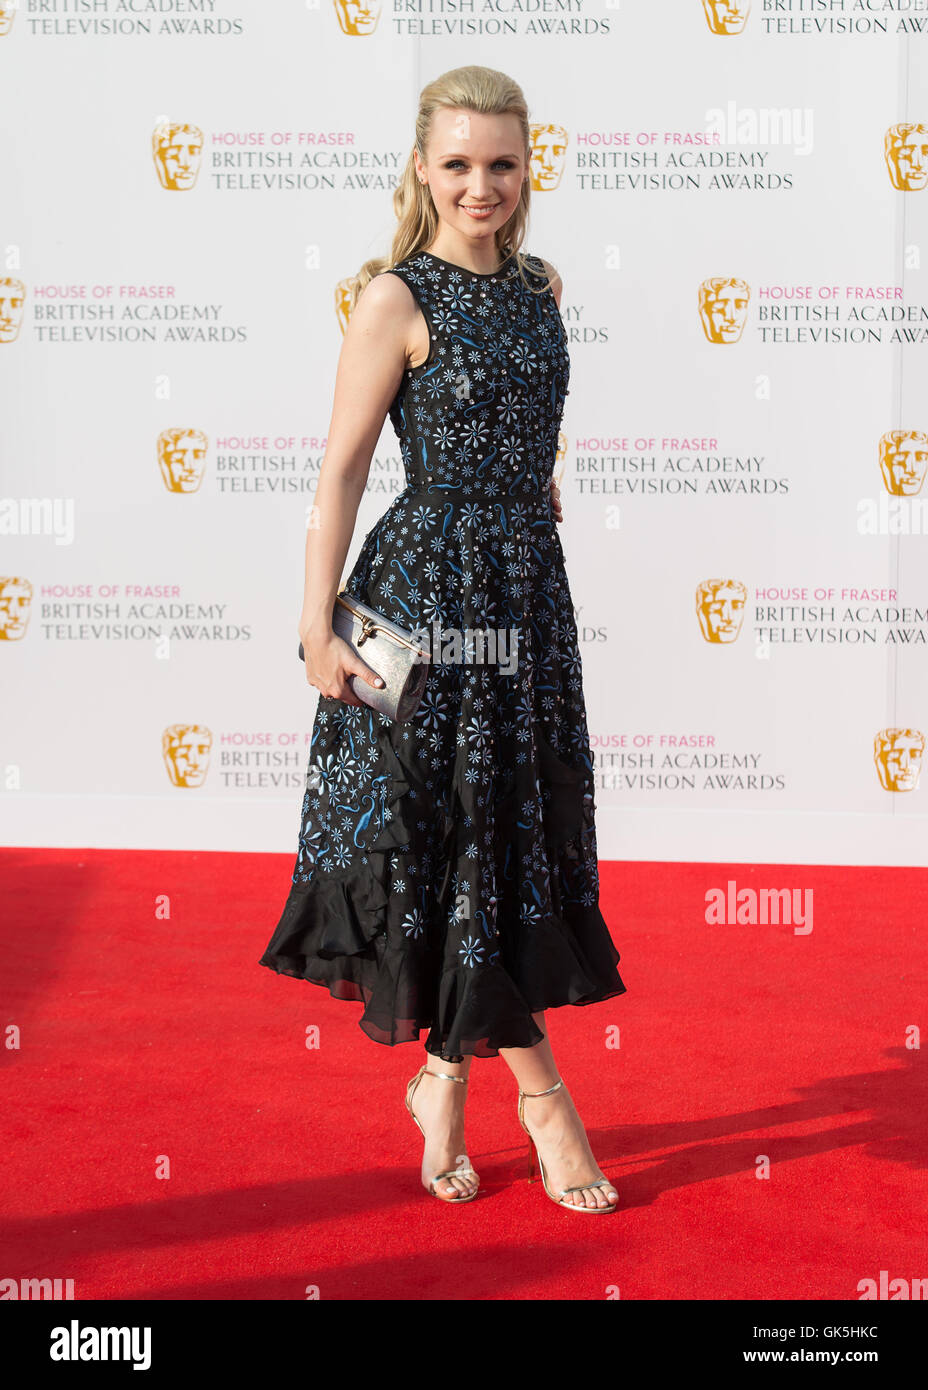 The House of Fraser British Academy Television Awards 2016 held at the Royal Festival Hall - Arrivals  Featuring: Stock Photo